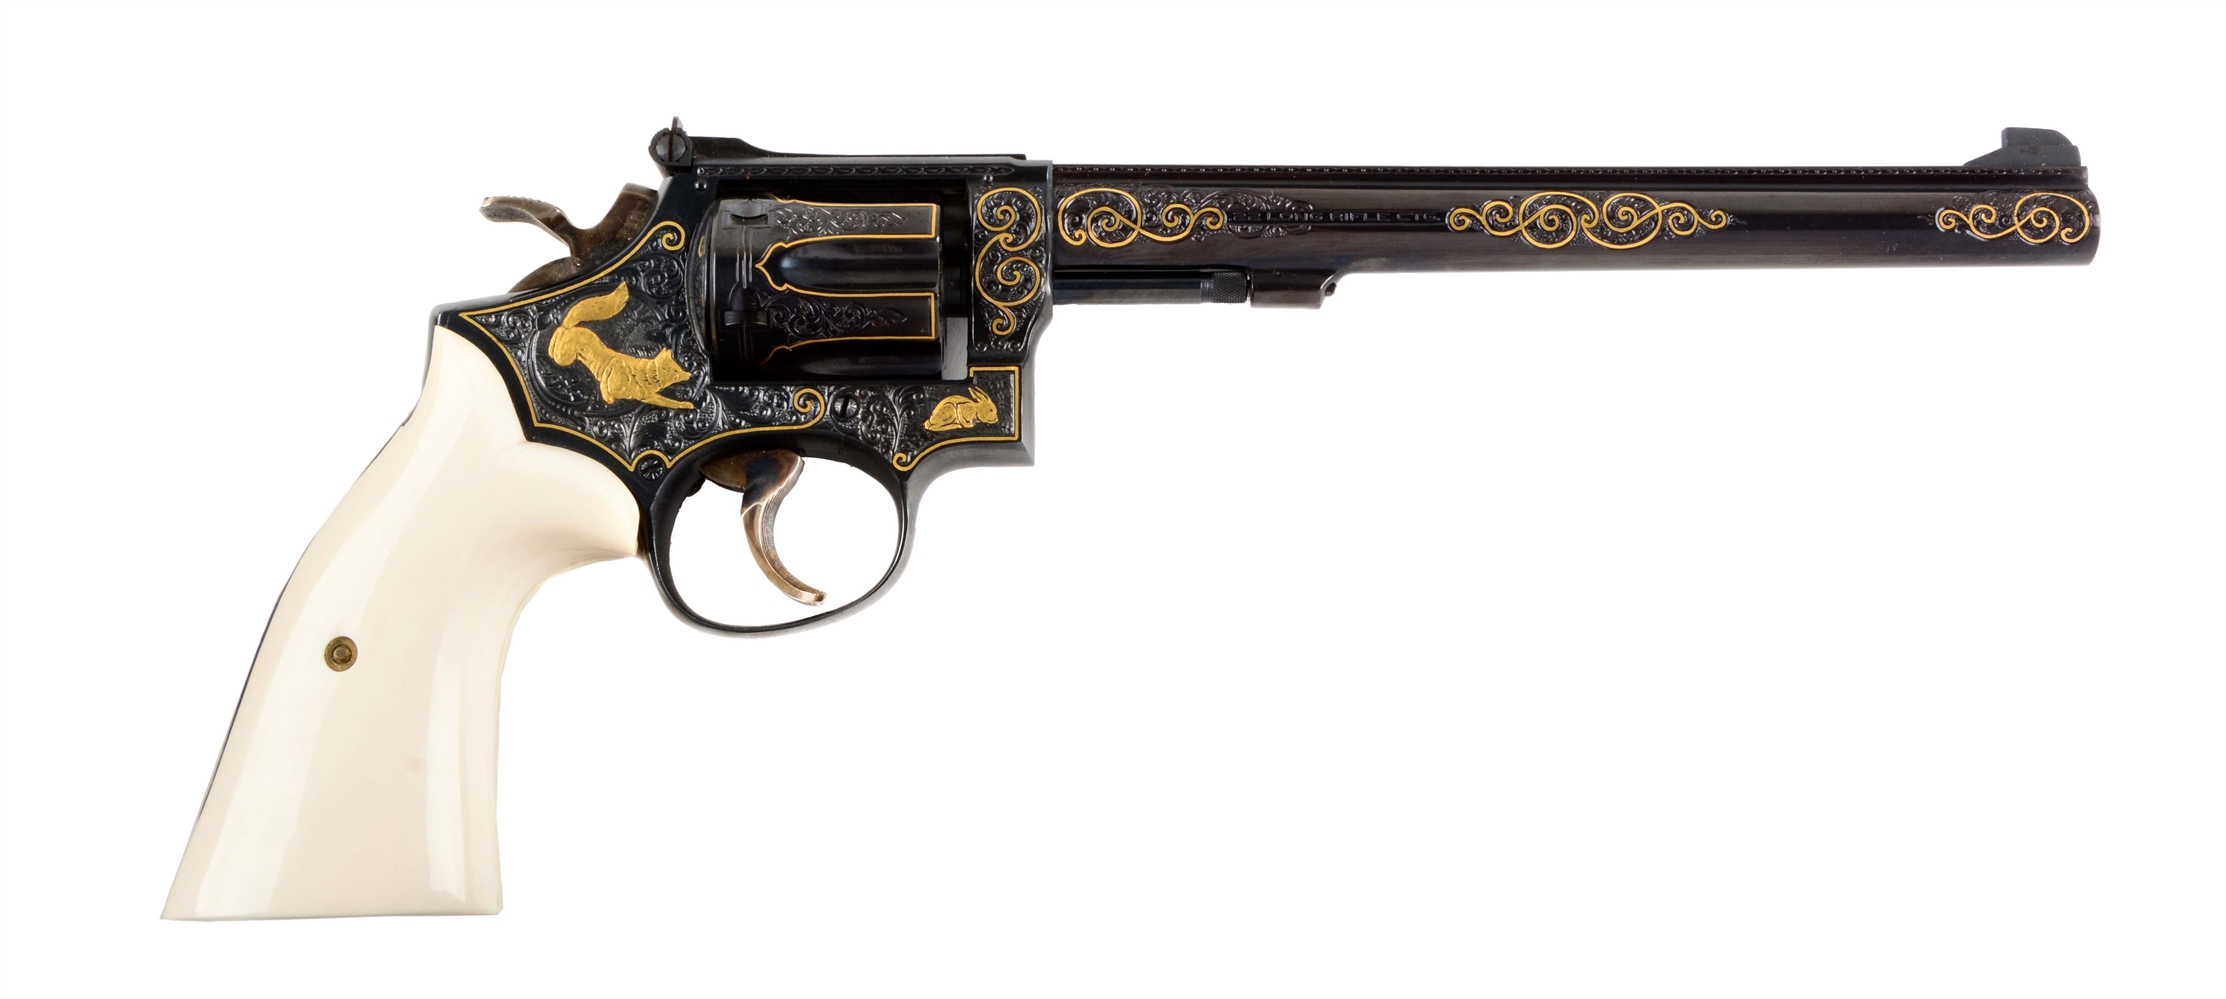 (M) Engraved & Gold Inlay S&W Model 17-3 Double Action Revolver.